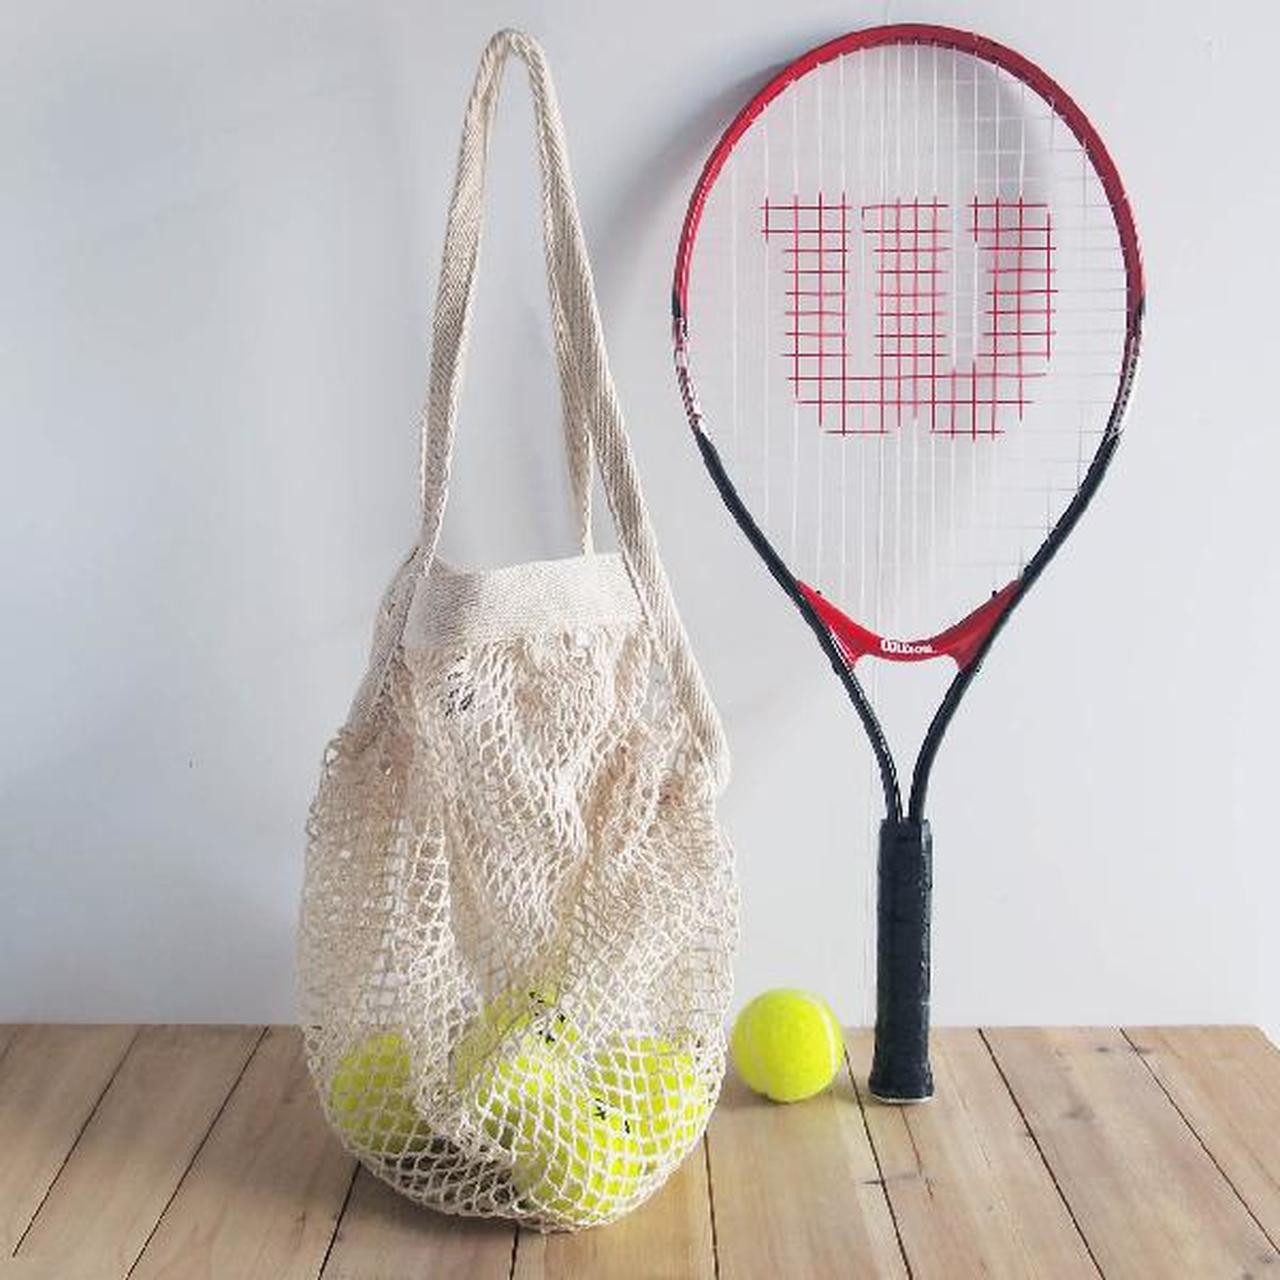 Reusable Cotton Grocery Bags, Ball Mesh Bags, Organic Cotton Tote Bags | Packaging Decor